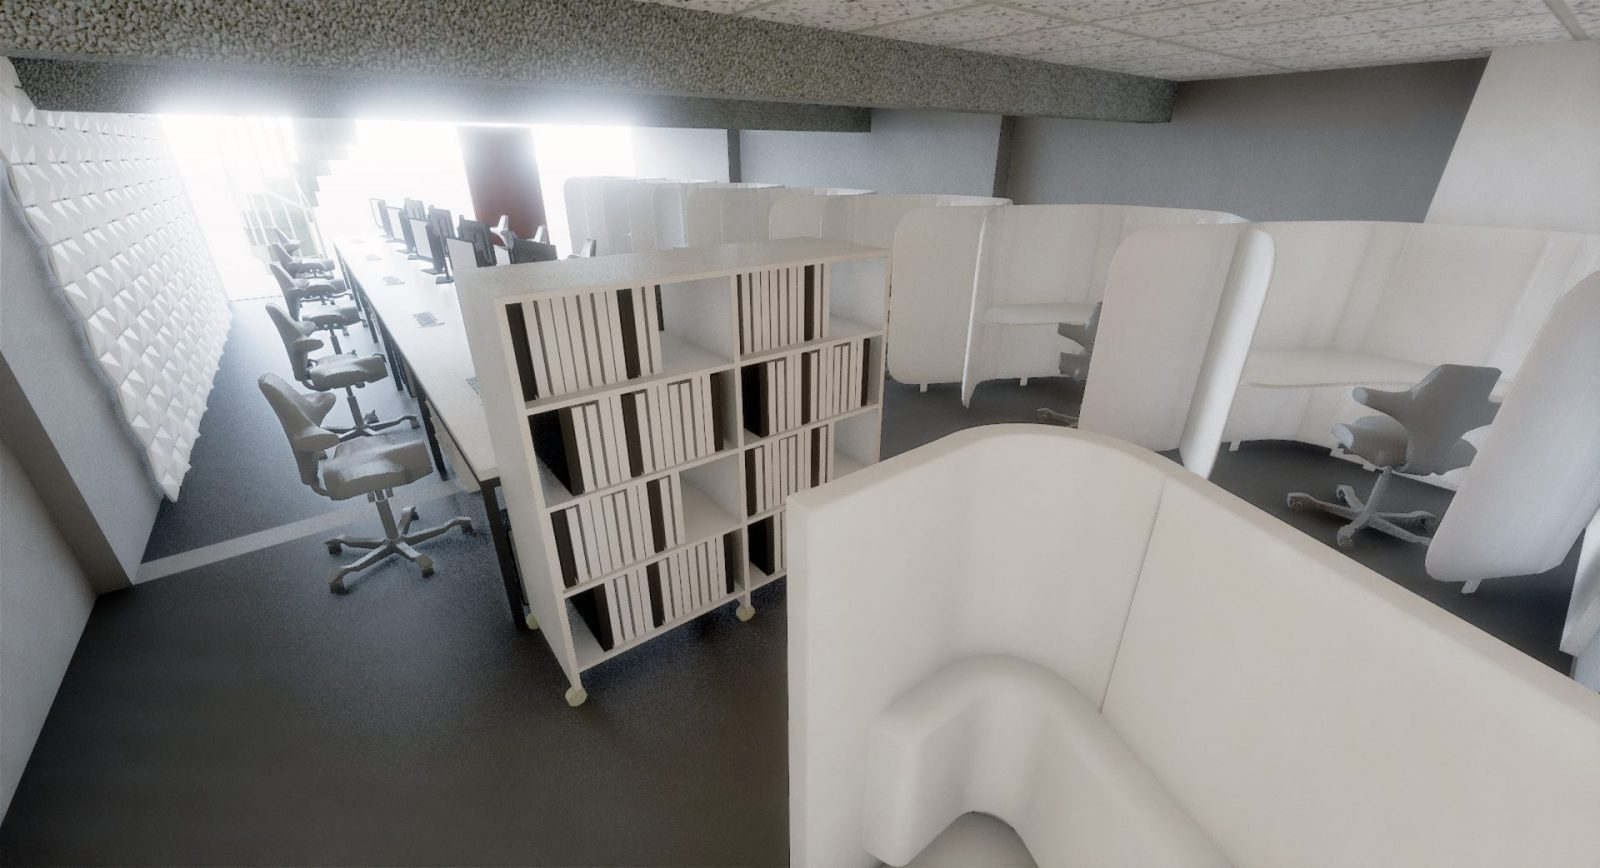 hill street st helier offices refurb interiors architects jersey architecture2